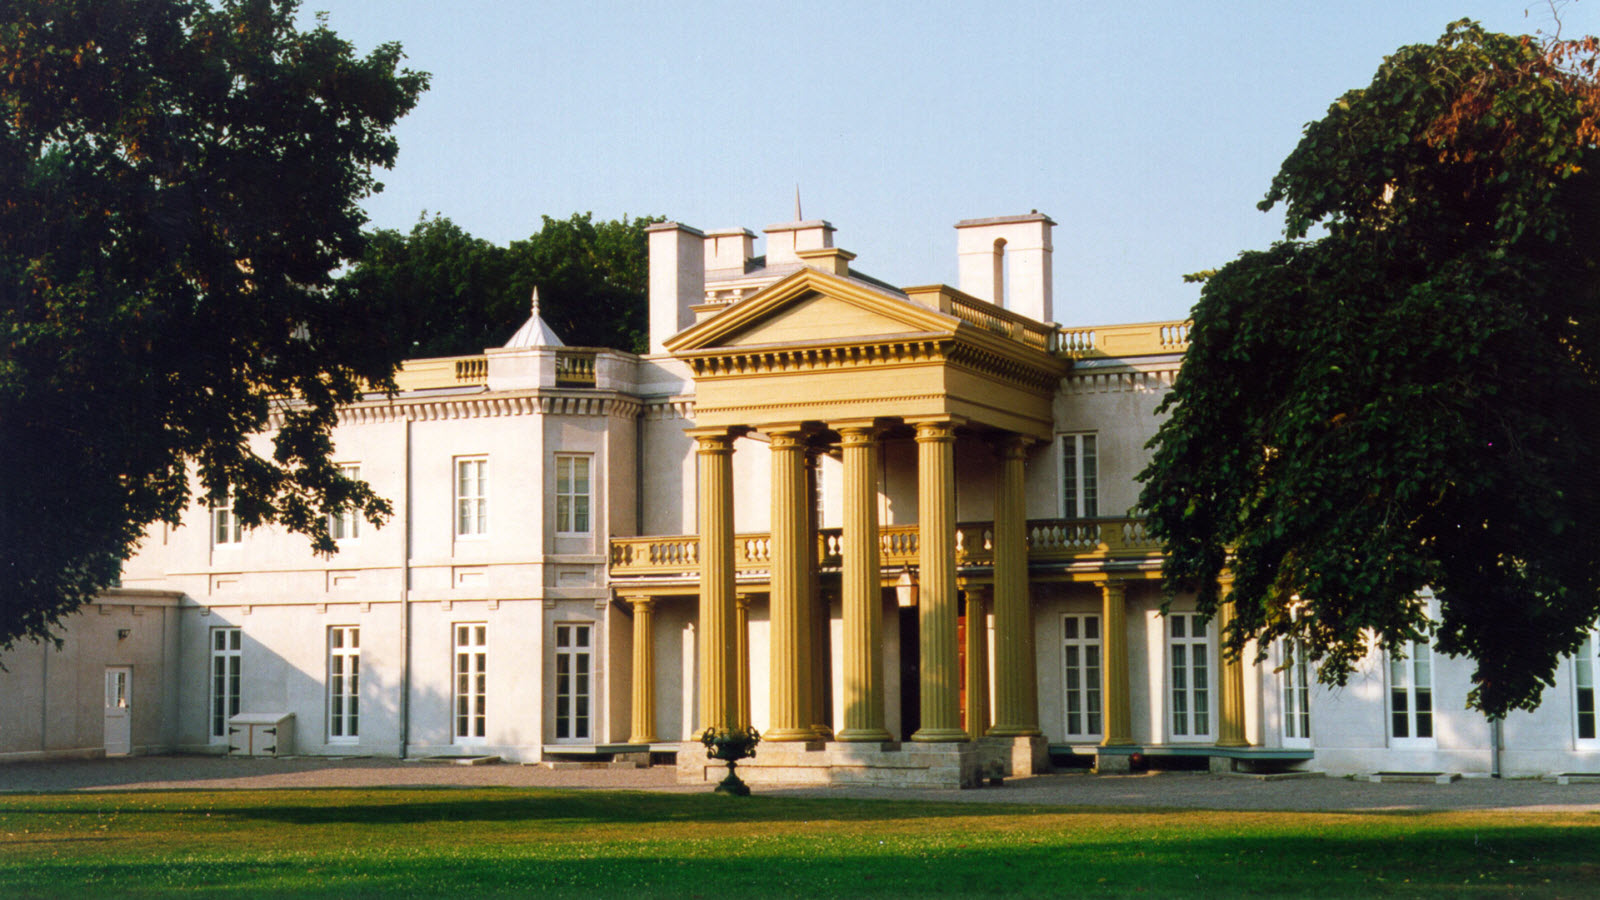 Things to do in Hamilton - Dundurn Castle